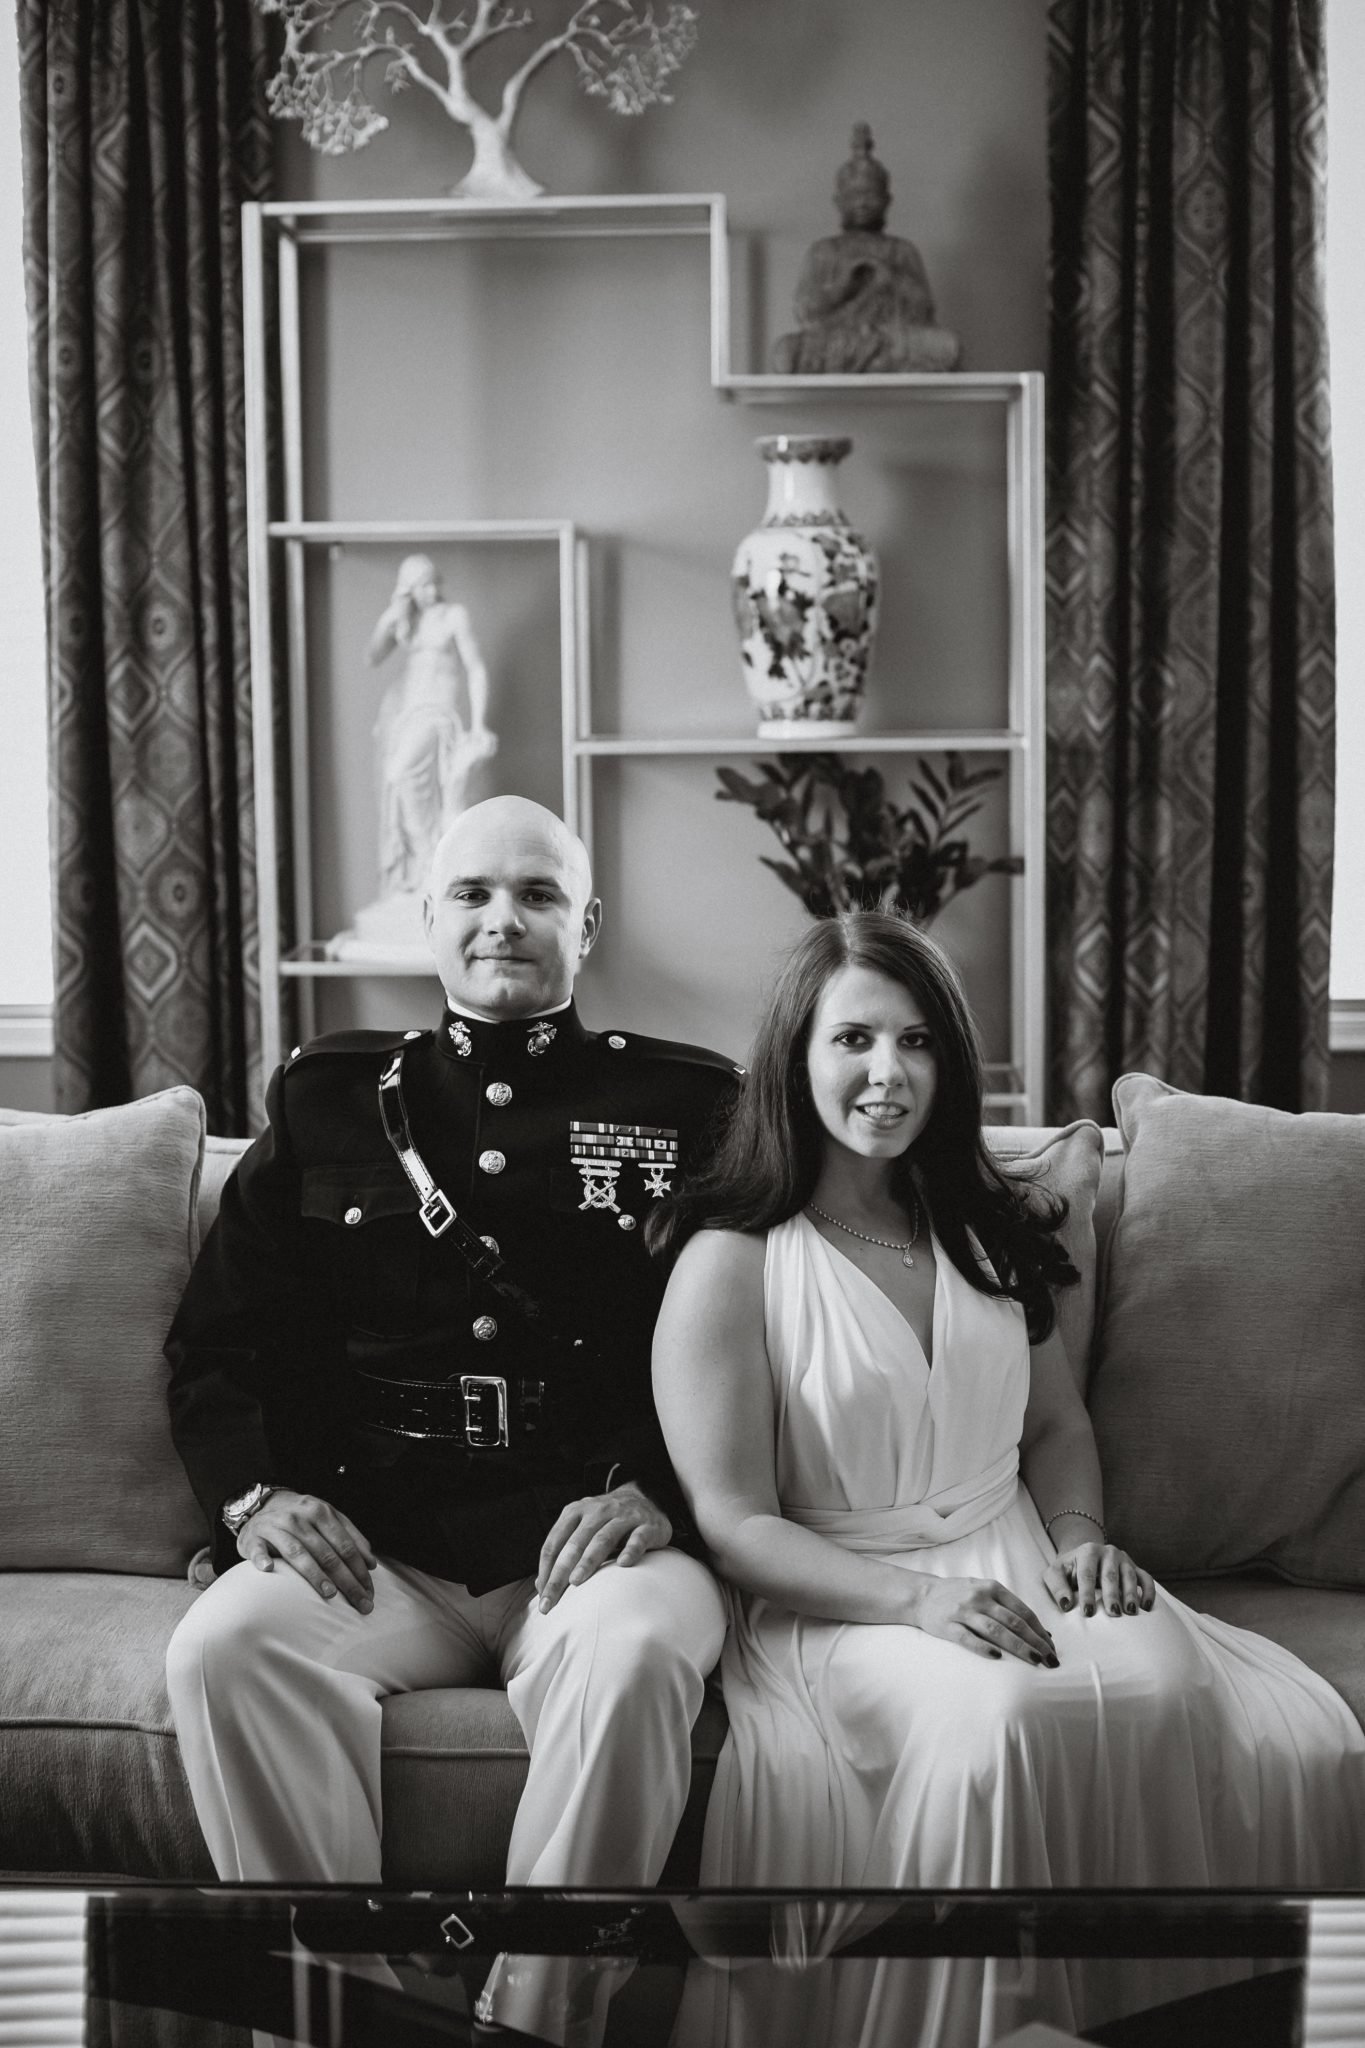 Black and white portrait of the couple sitting on a couch